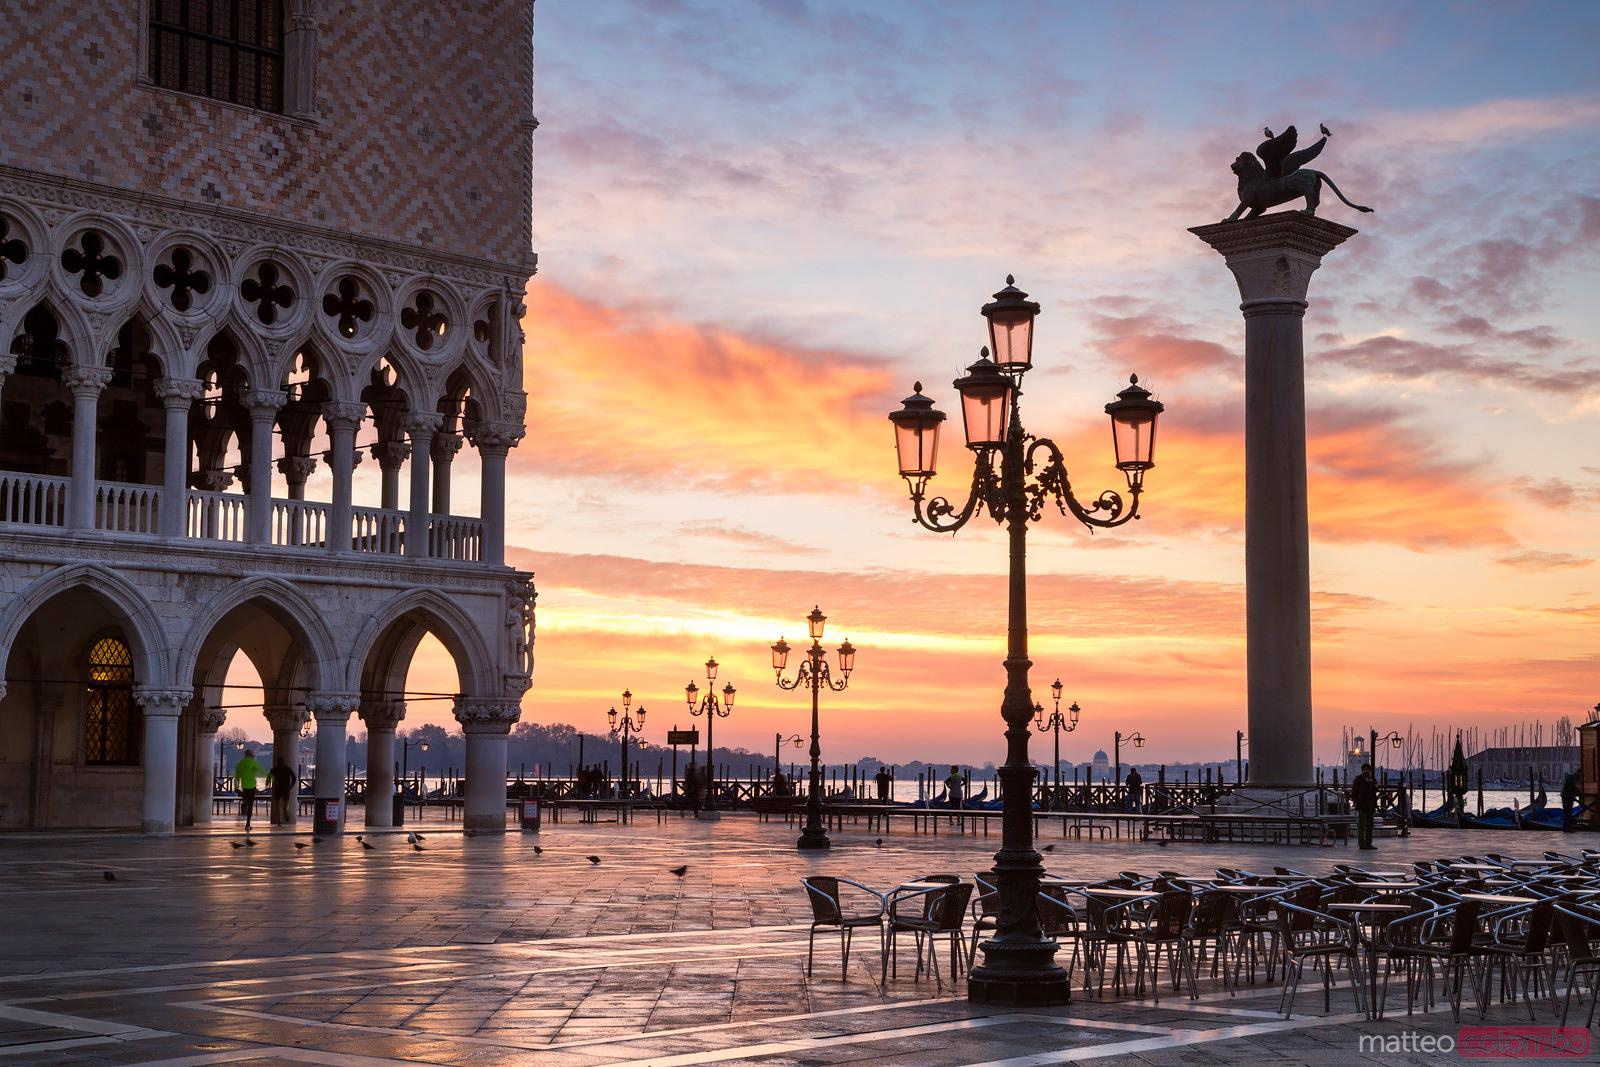 Awesome sunrise over St Marks square, Venice